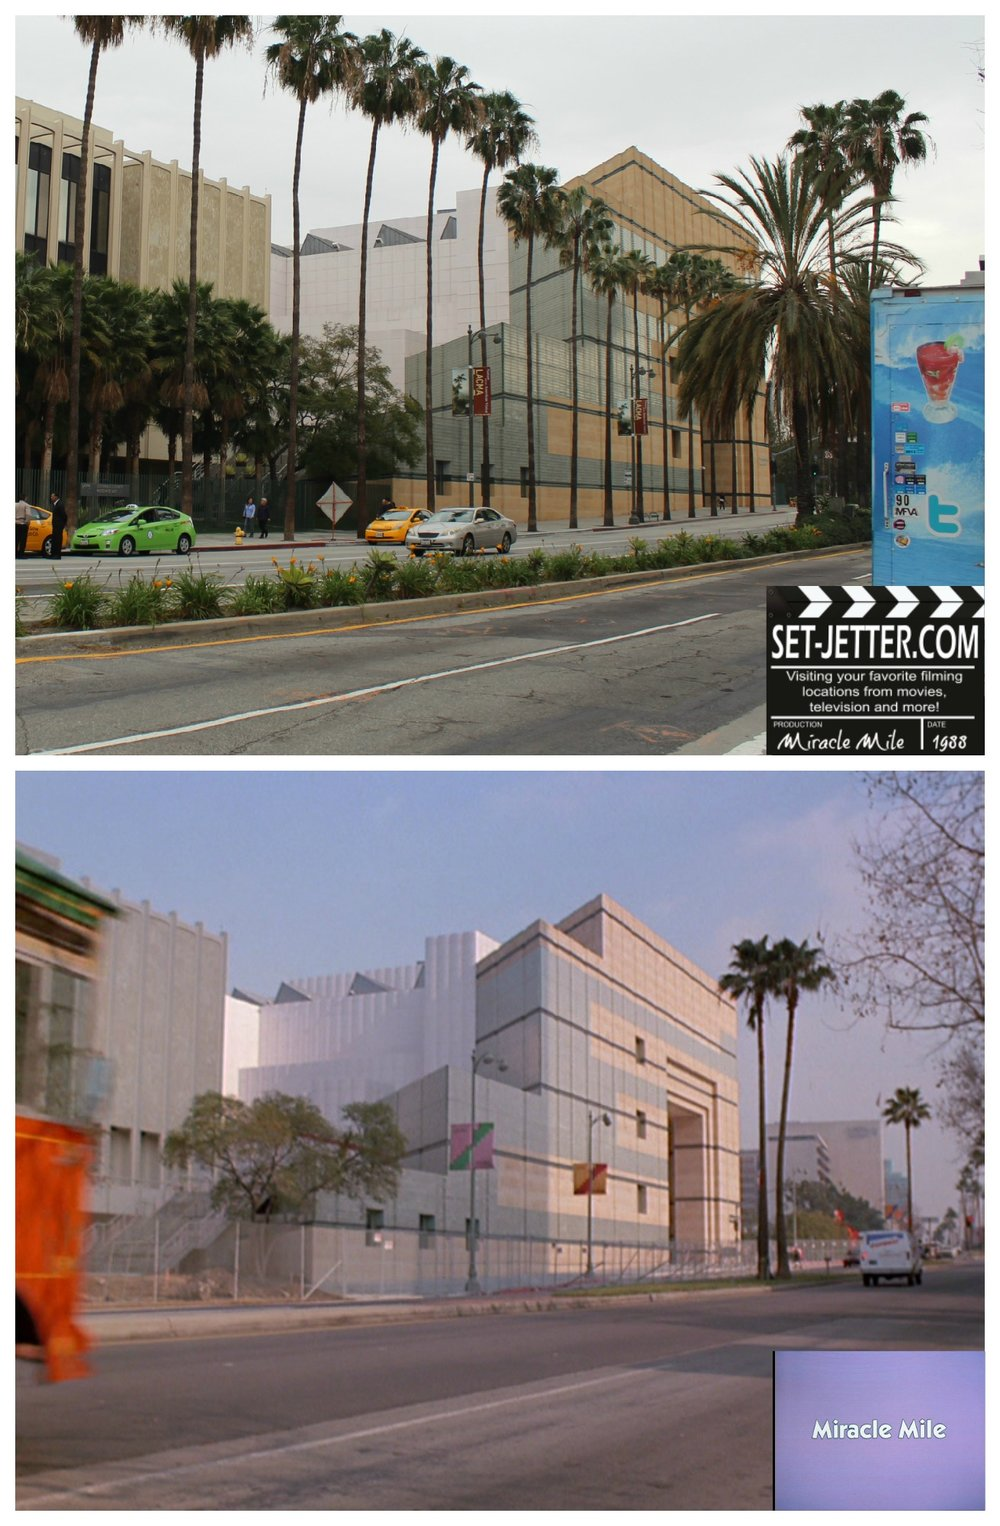 Miracle Mile comparison 02.jpg